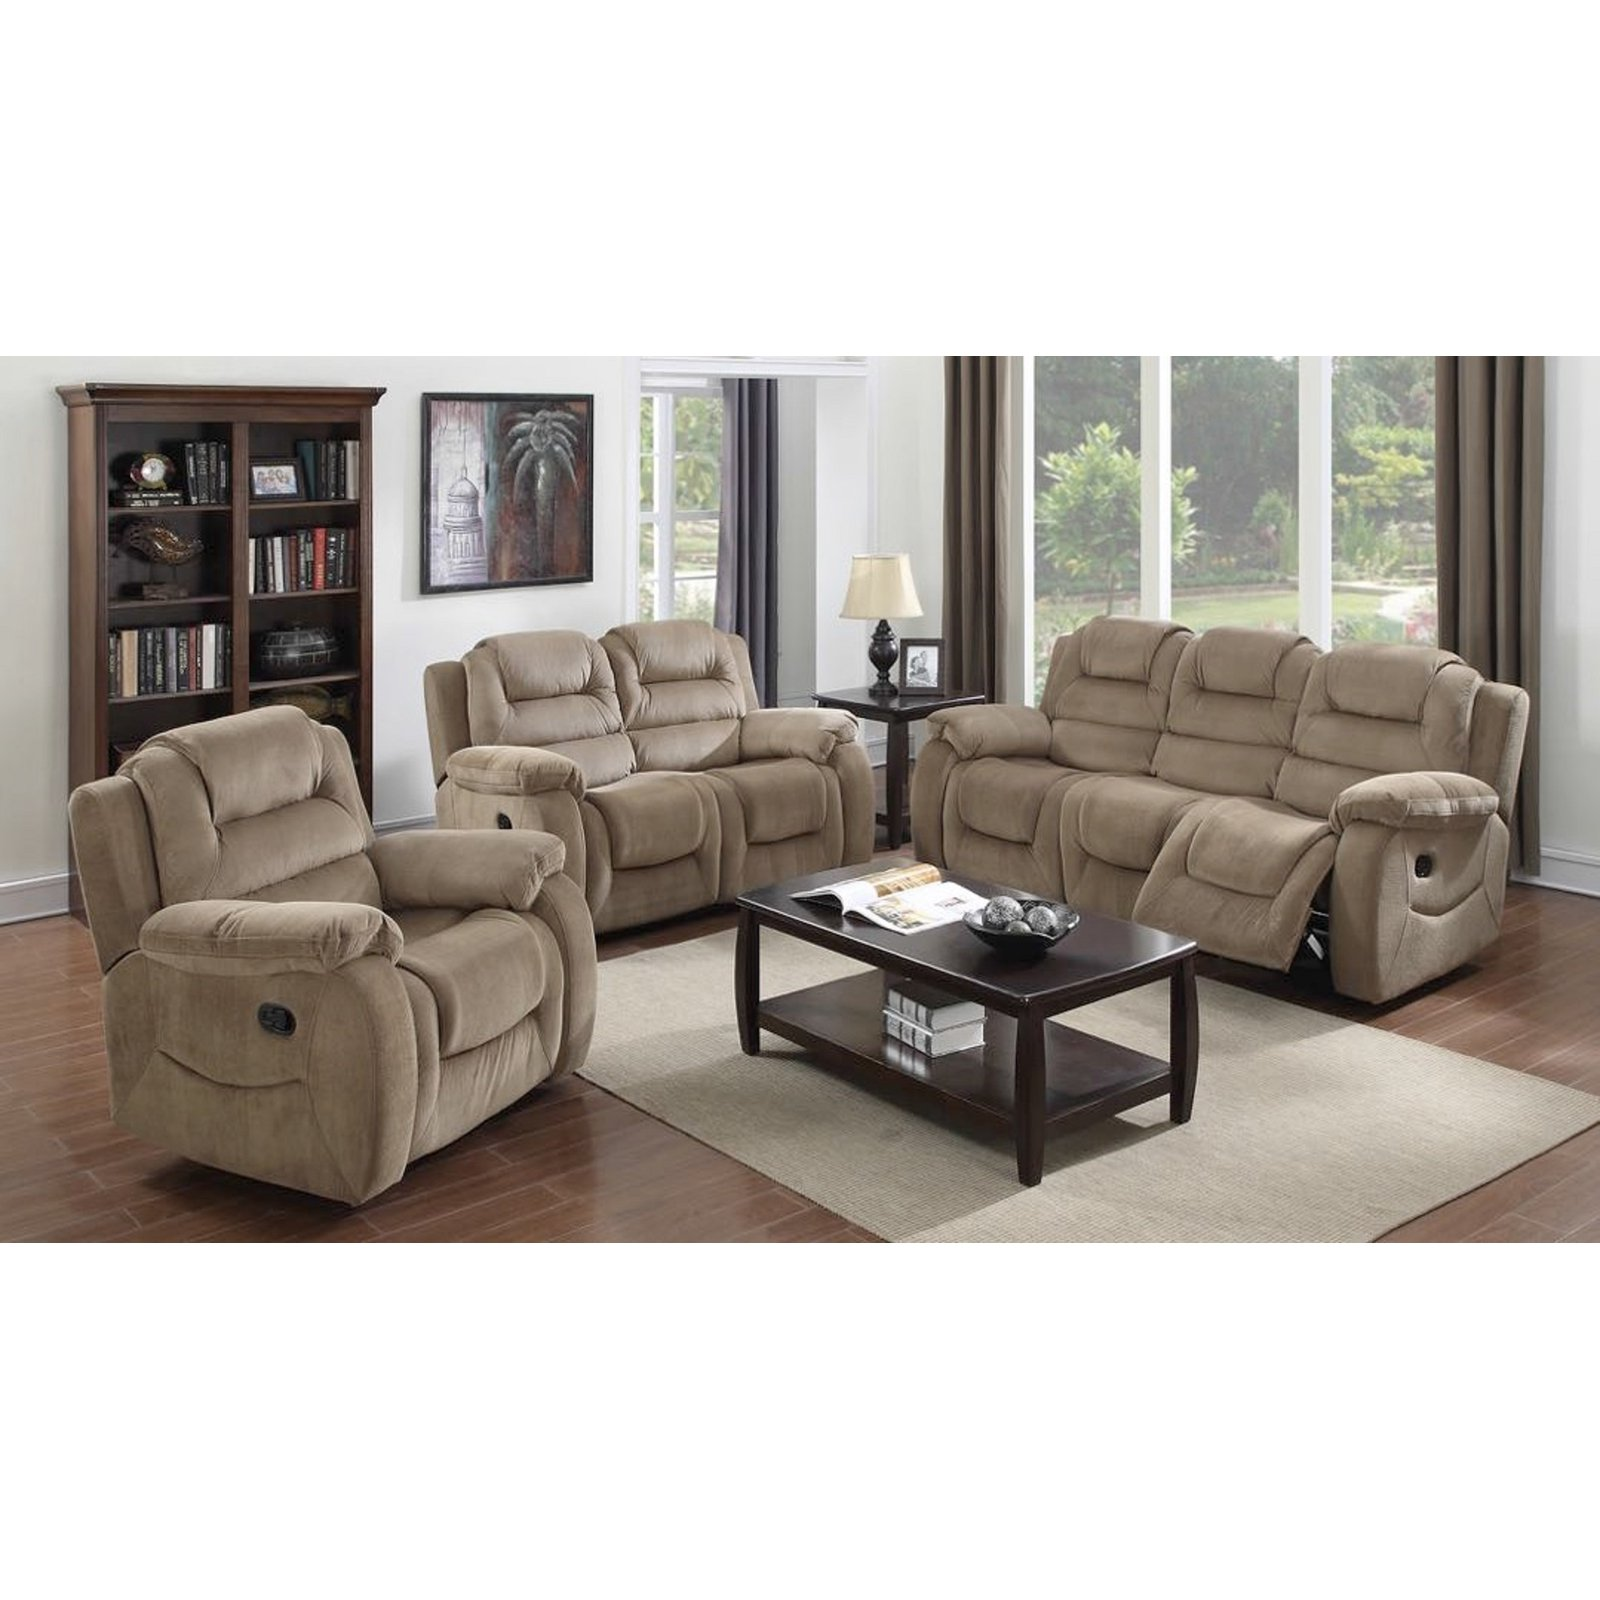 Sunset Trading Aspen 3-Piece Sofa Set